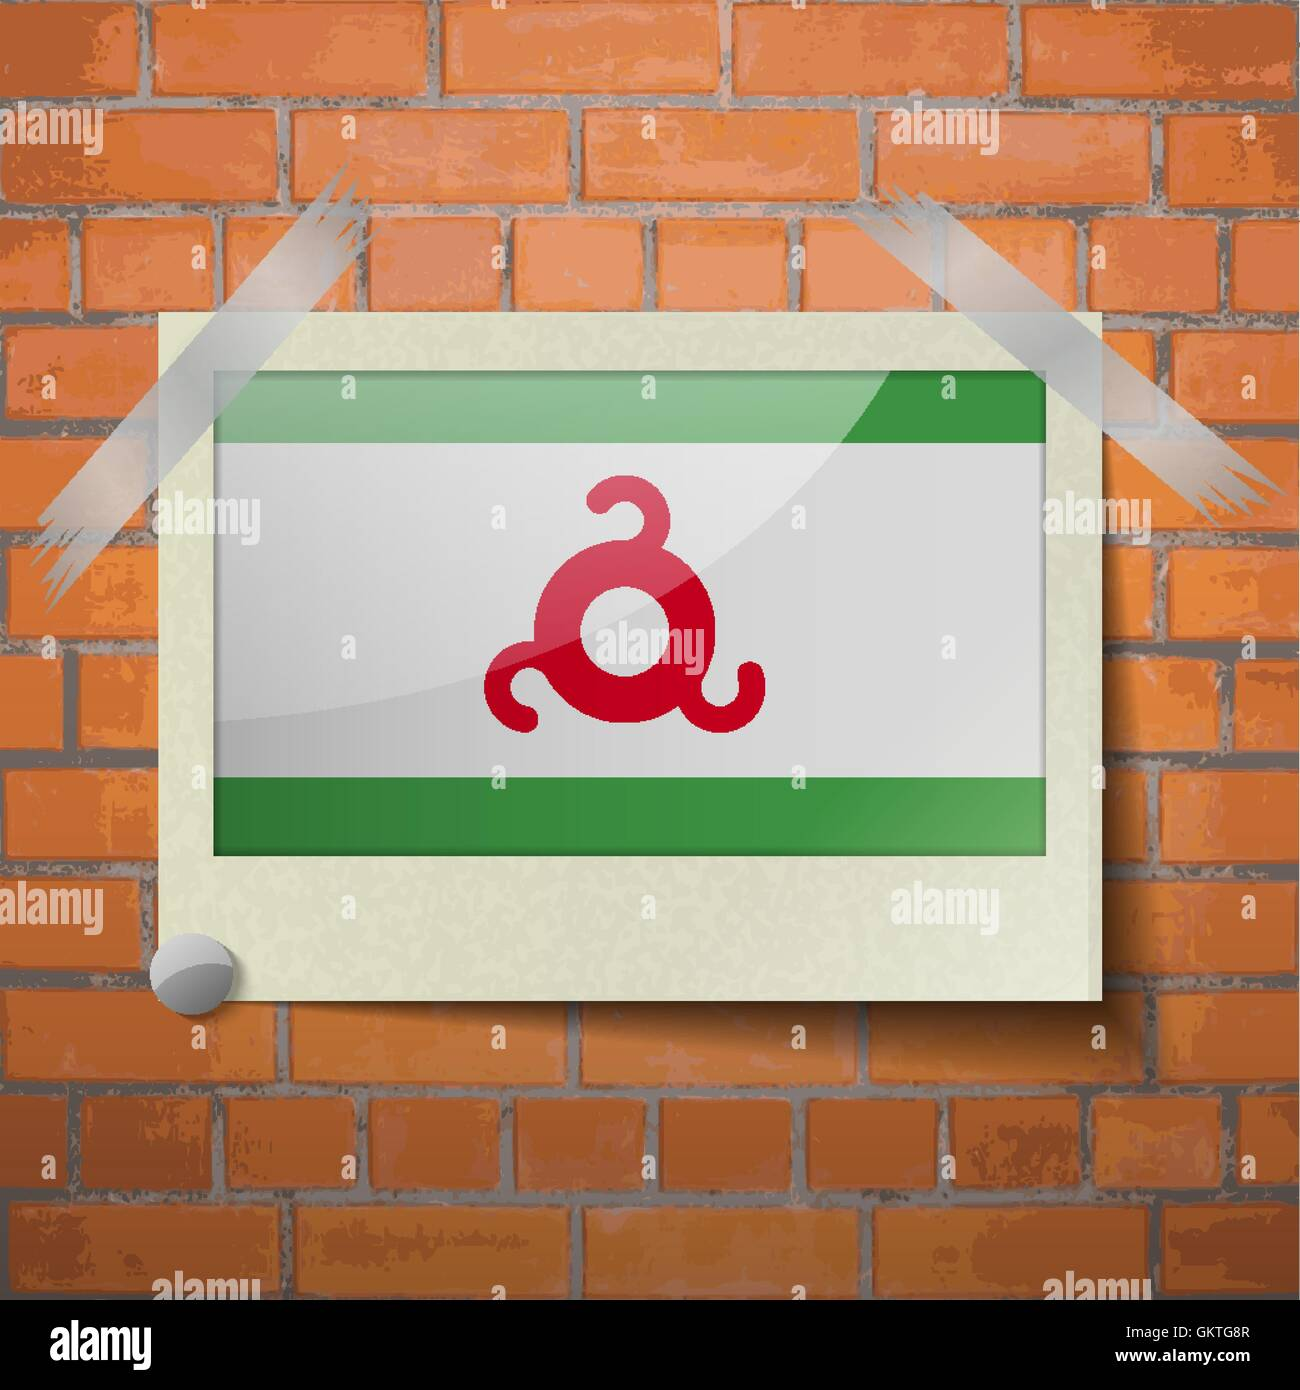 Flags Ingushetia scotch taped to a red brick wall - Stock Image